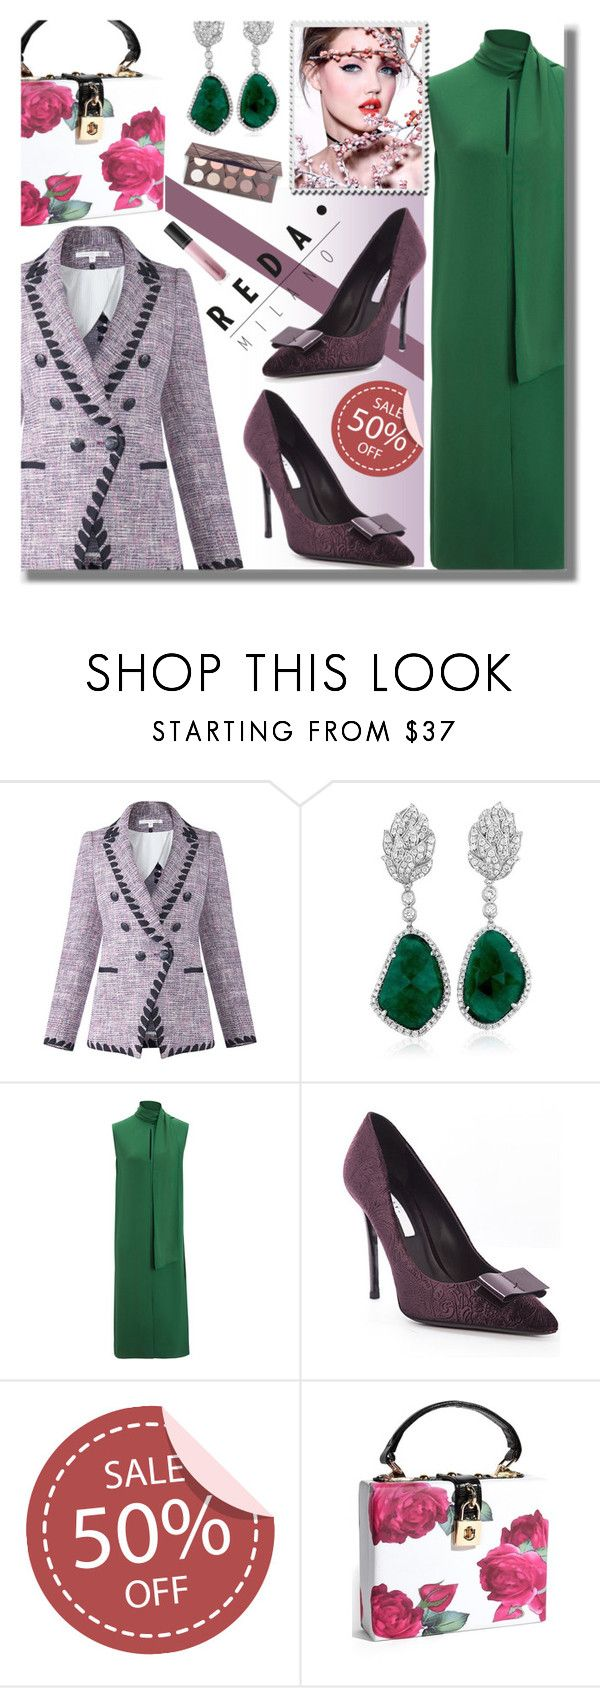 """""""Reda Milano Fashionable Woman's Shoes"""" by pesanjsp ❤ liked on Polyvore featuring Joseph and Bare Escentuals"""